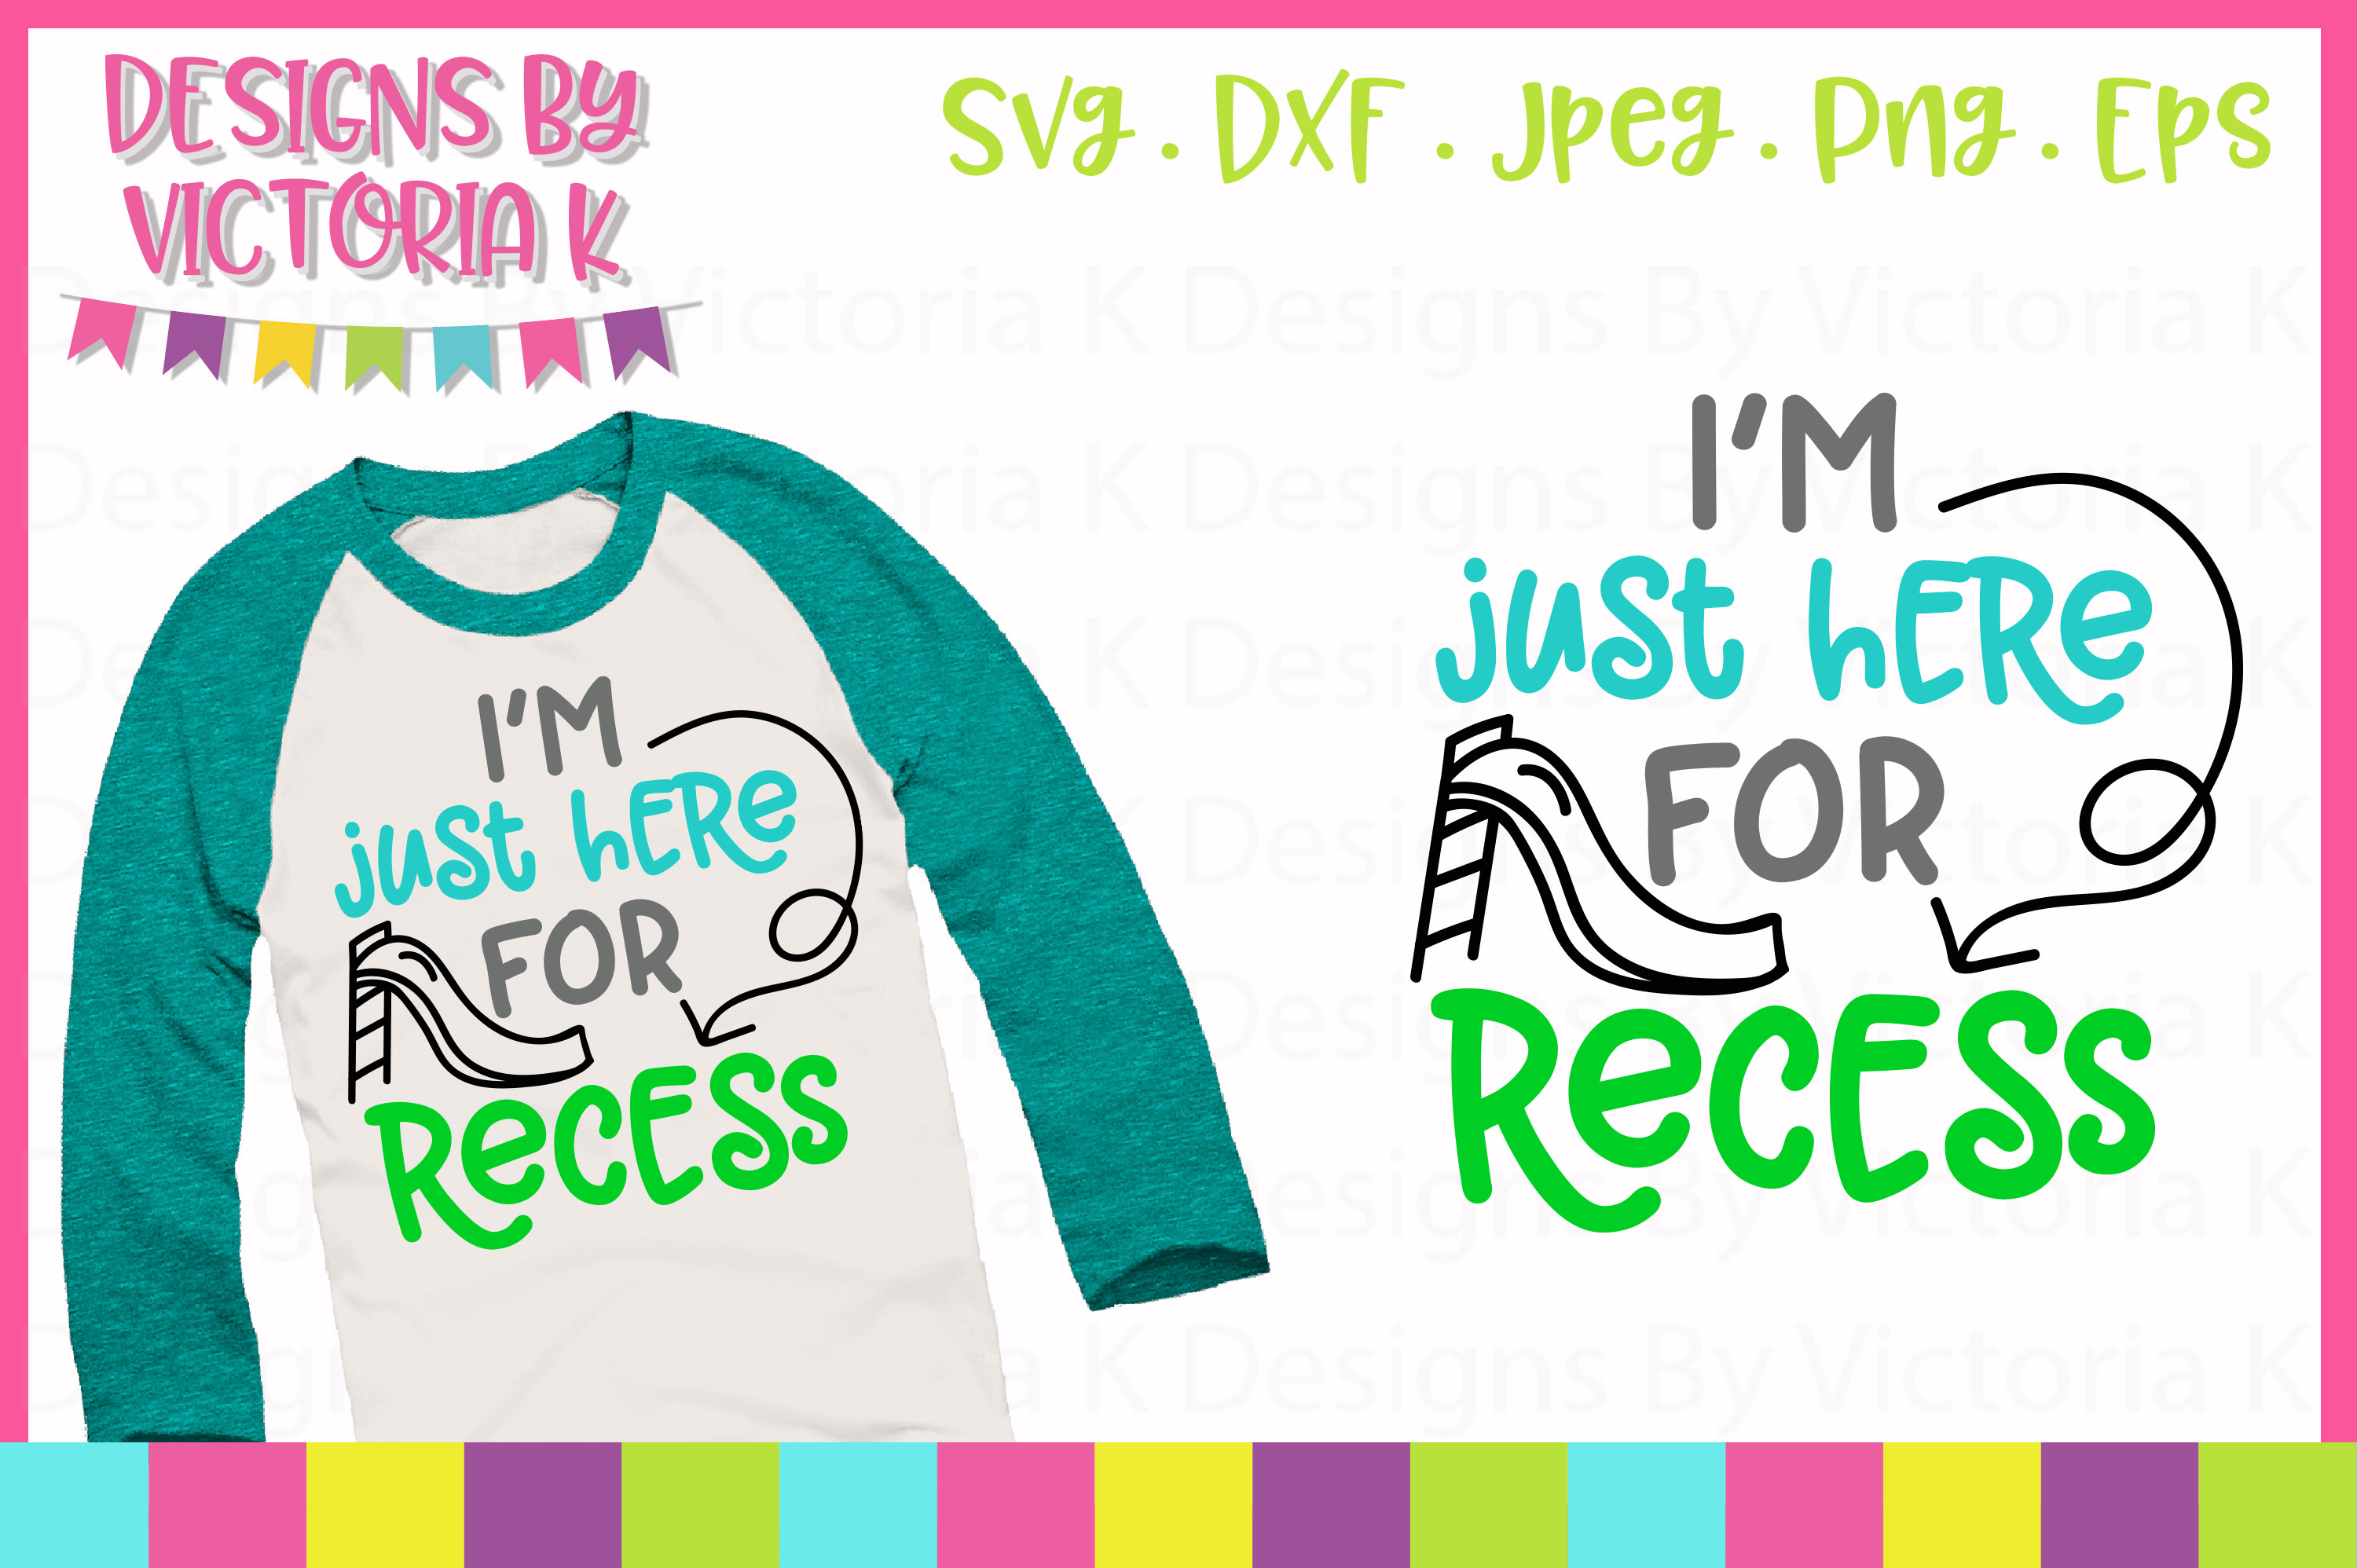 Download Free I M Just Here For Recess Svg Graphic By Designs By Victoria K for Cricut Explore, Silhouette and other cutting machines.